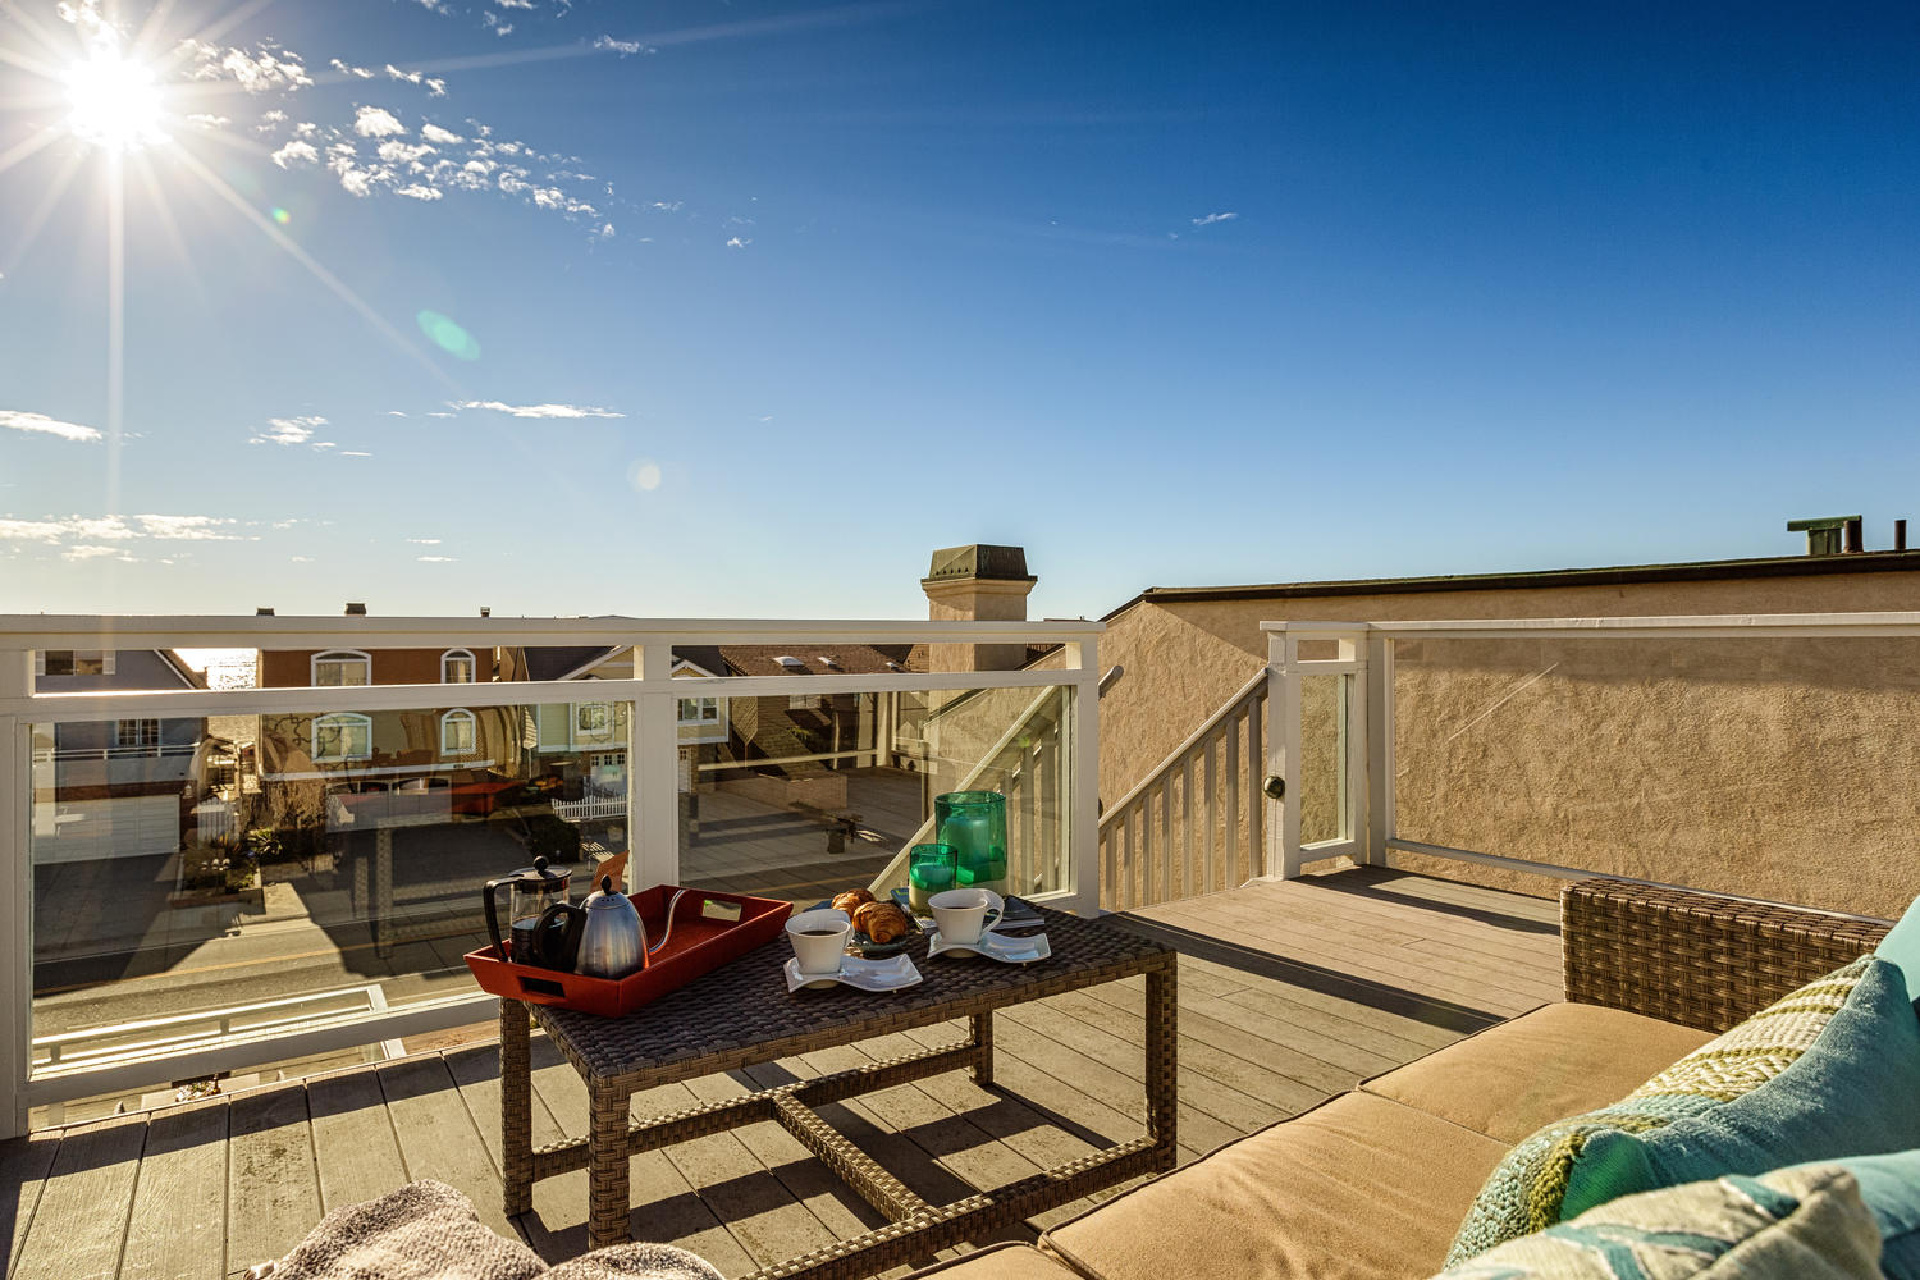 http://addressrealestate.com/media/images/blogs/38/2/b_23-1408-ocean-dr-oxnard-ca-93035-mls-size-023-17-rooftop-patio-1500x1000-72dpi.jpg